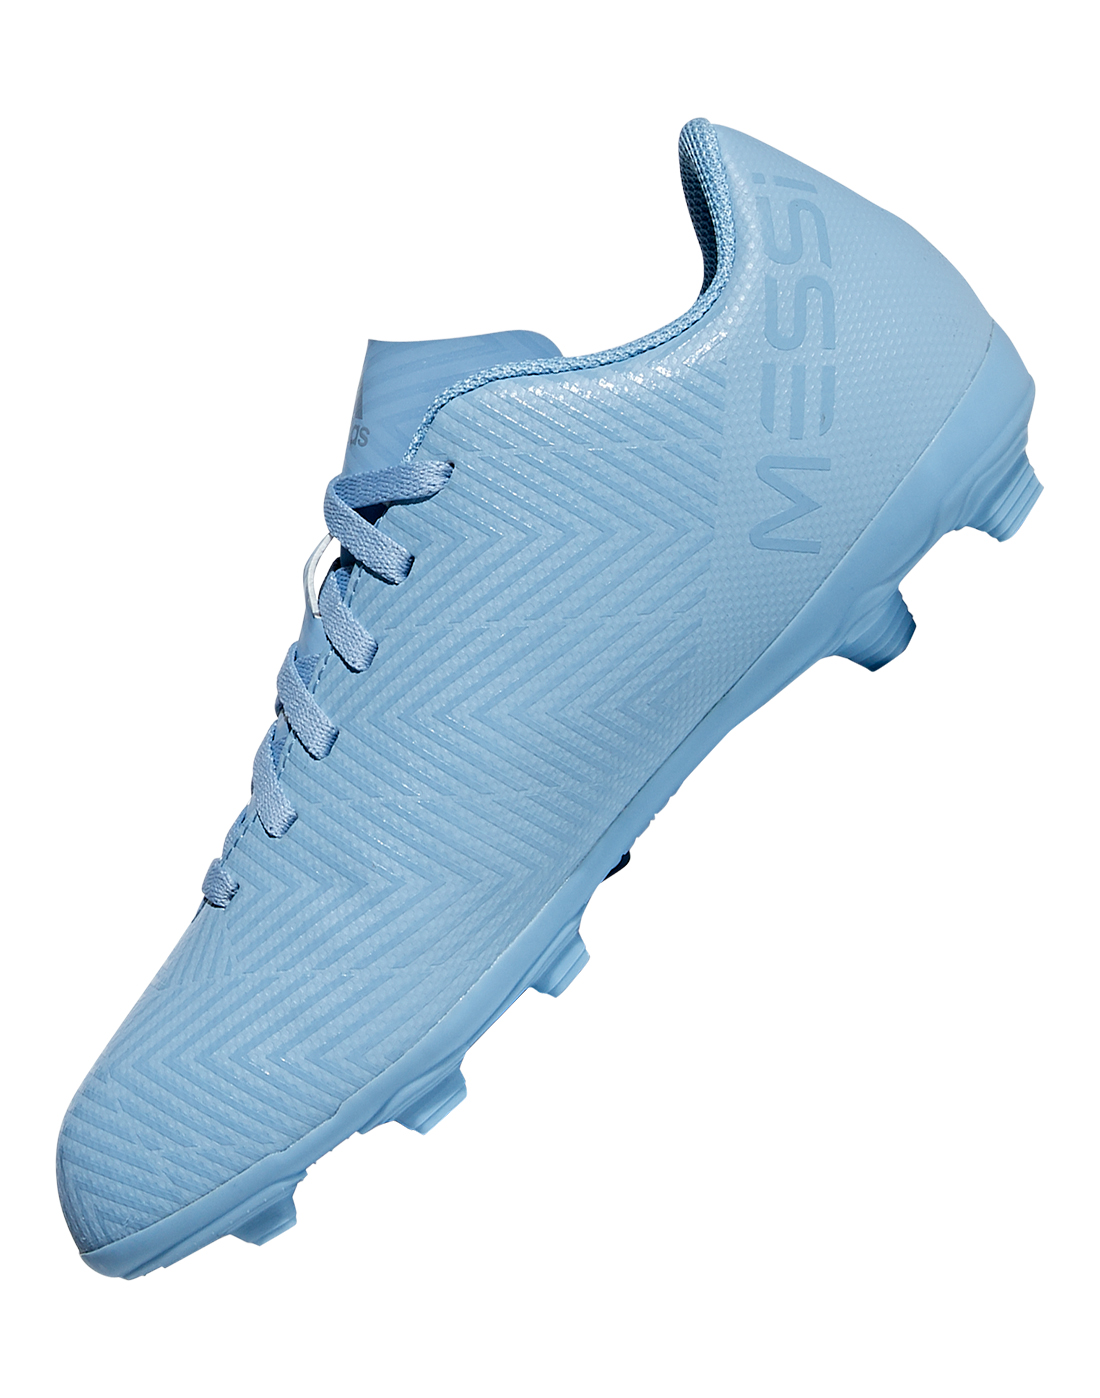 the best attitude 5cb31 0bb9b ... Kids Nemeziz Messi 18.3 FG Spectral Mode